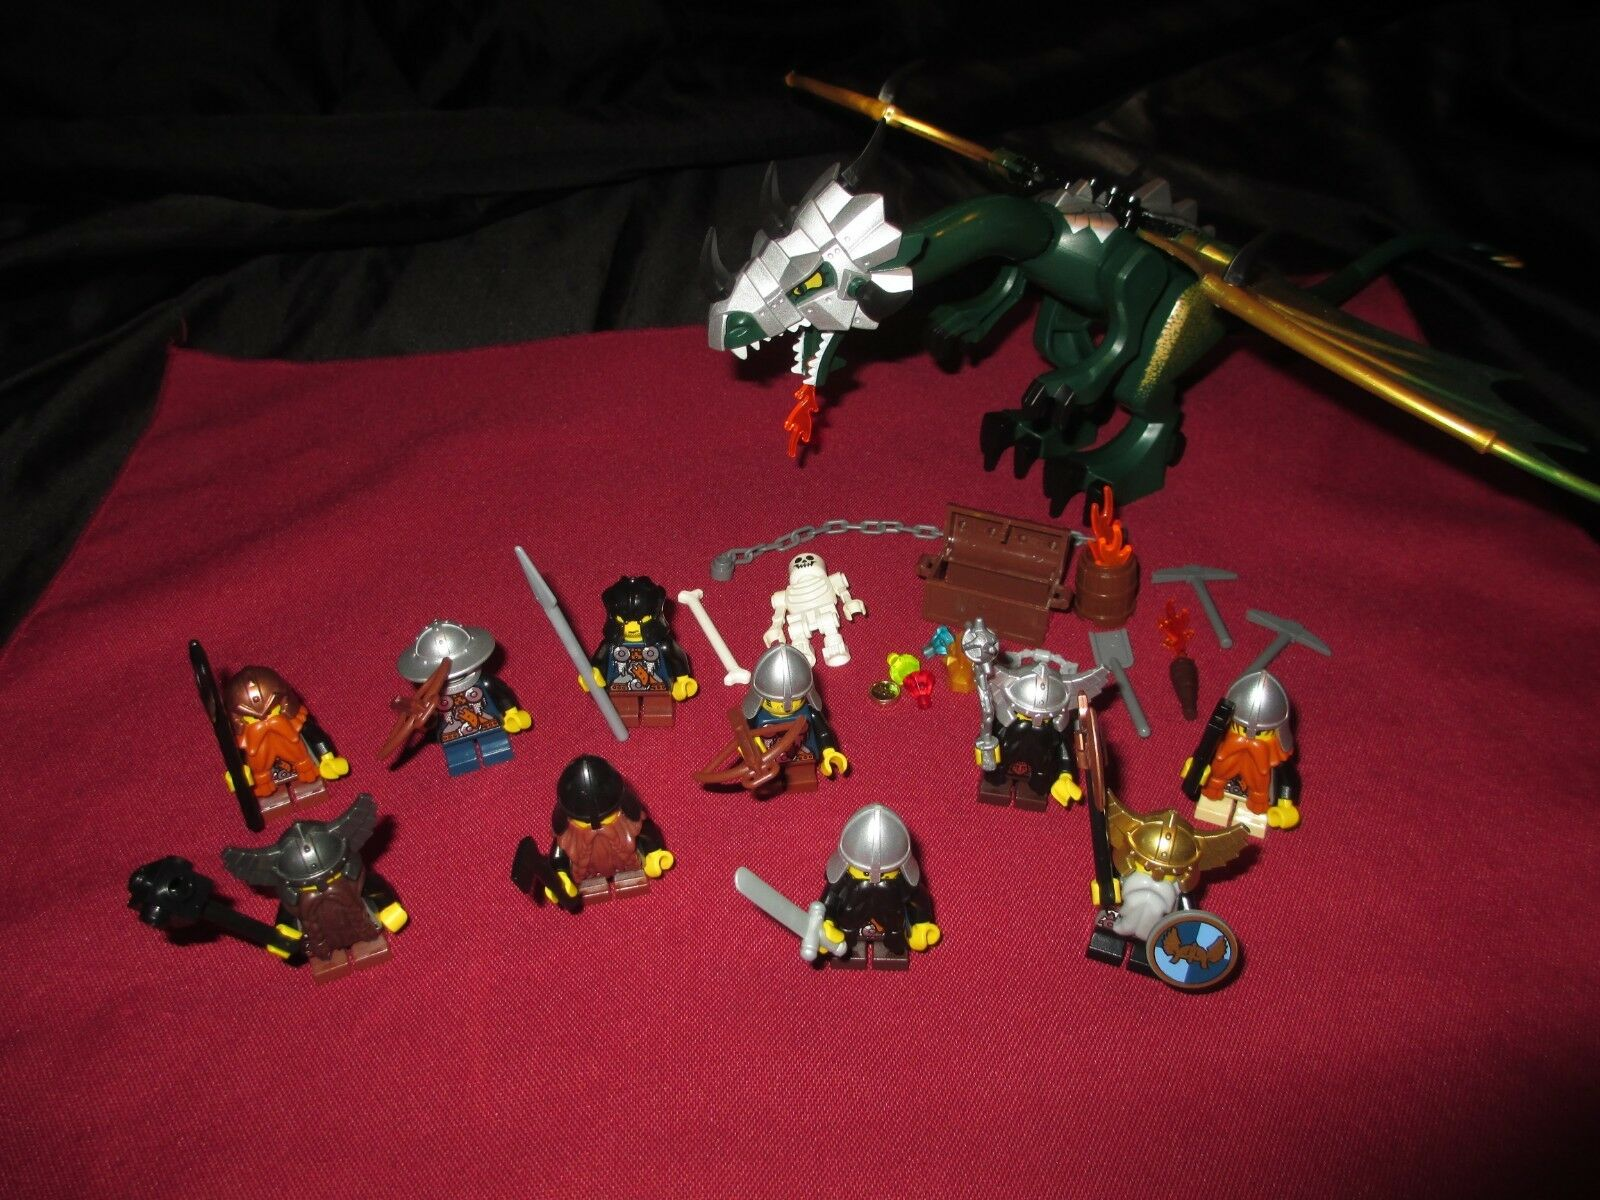 LEGO LEGO LEGO Castle Dragon  Minifigures LOT Knights, Dwarves ,Soldiers,Weapons,Armor . 6d01f4